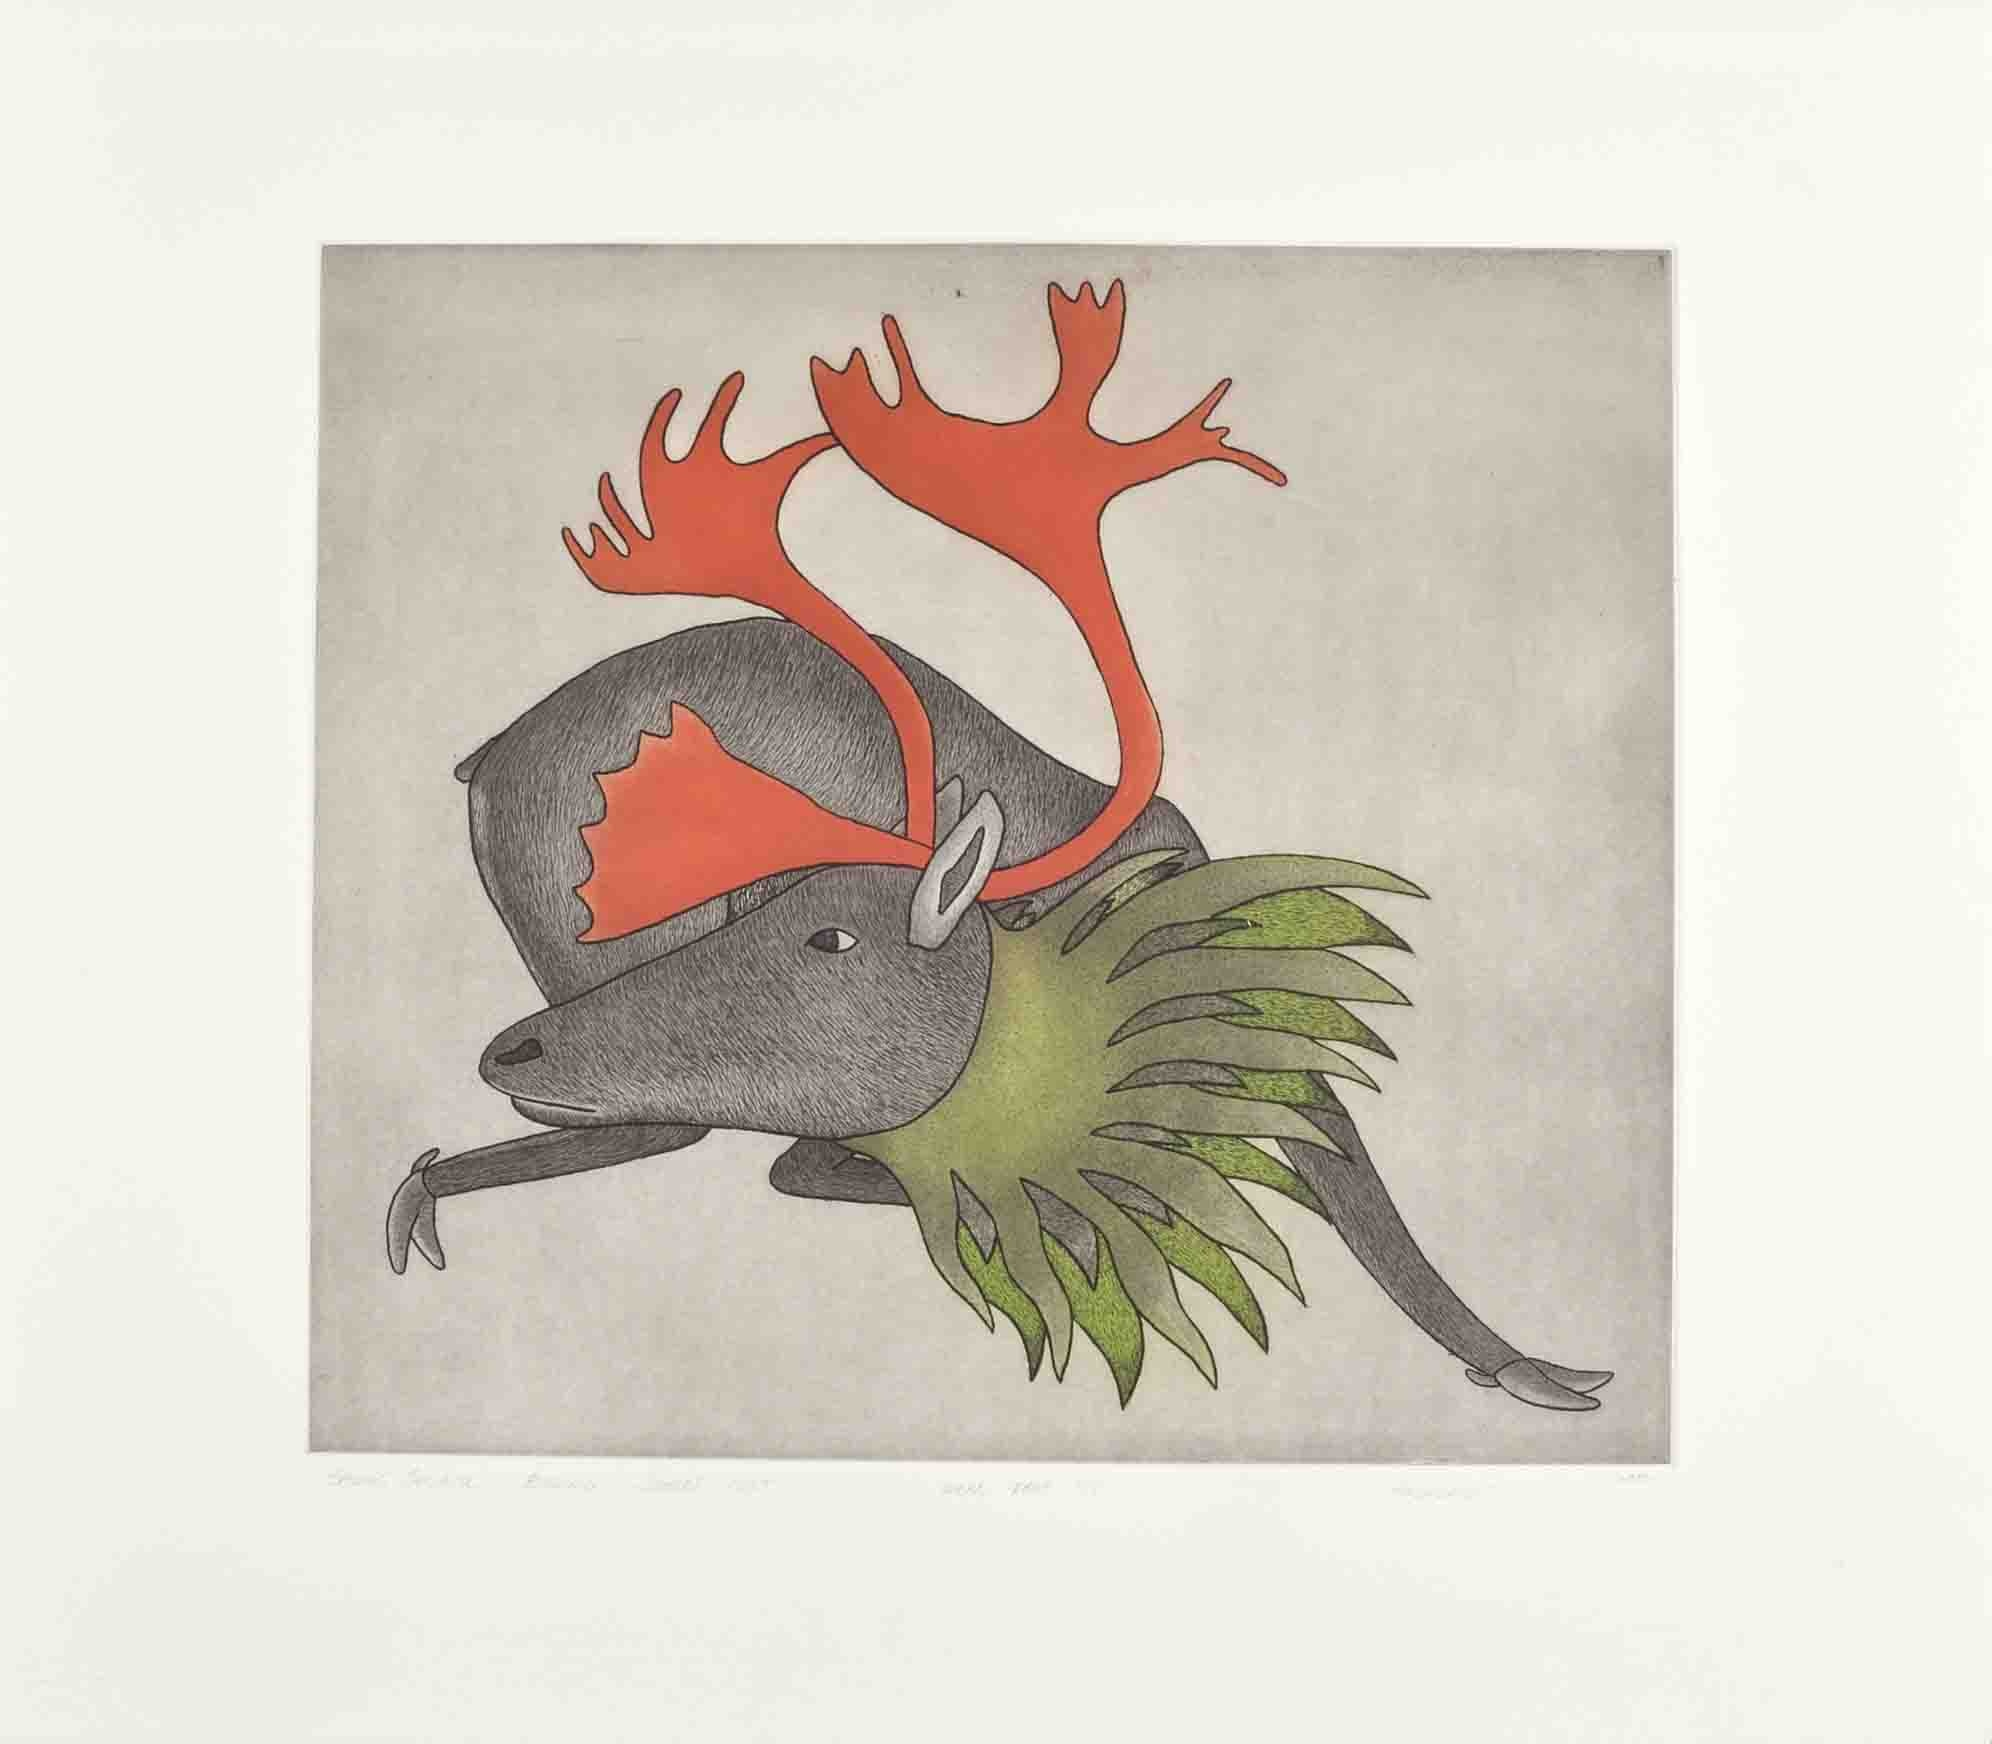 Kavavaow Mannomee Cape Dorset Inuit Etching and aquatint 24 x 27 1200 spring caribou 1995